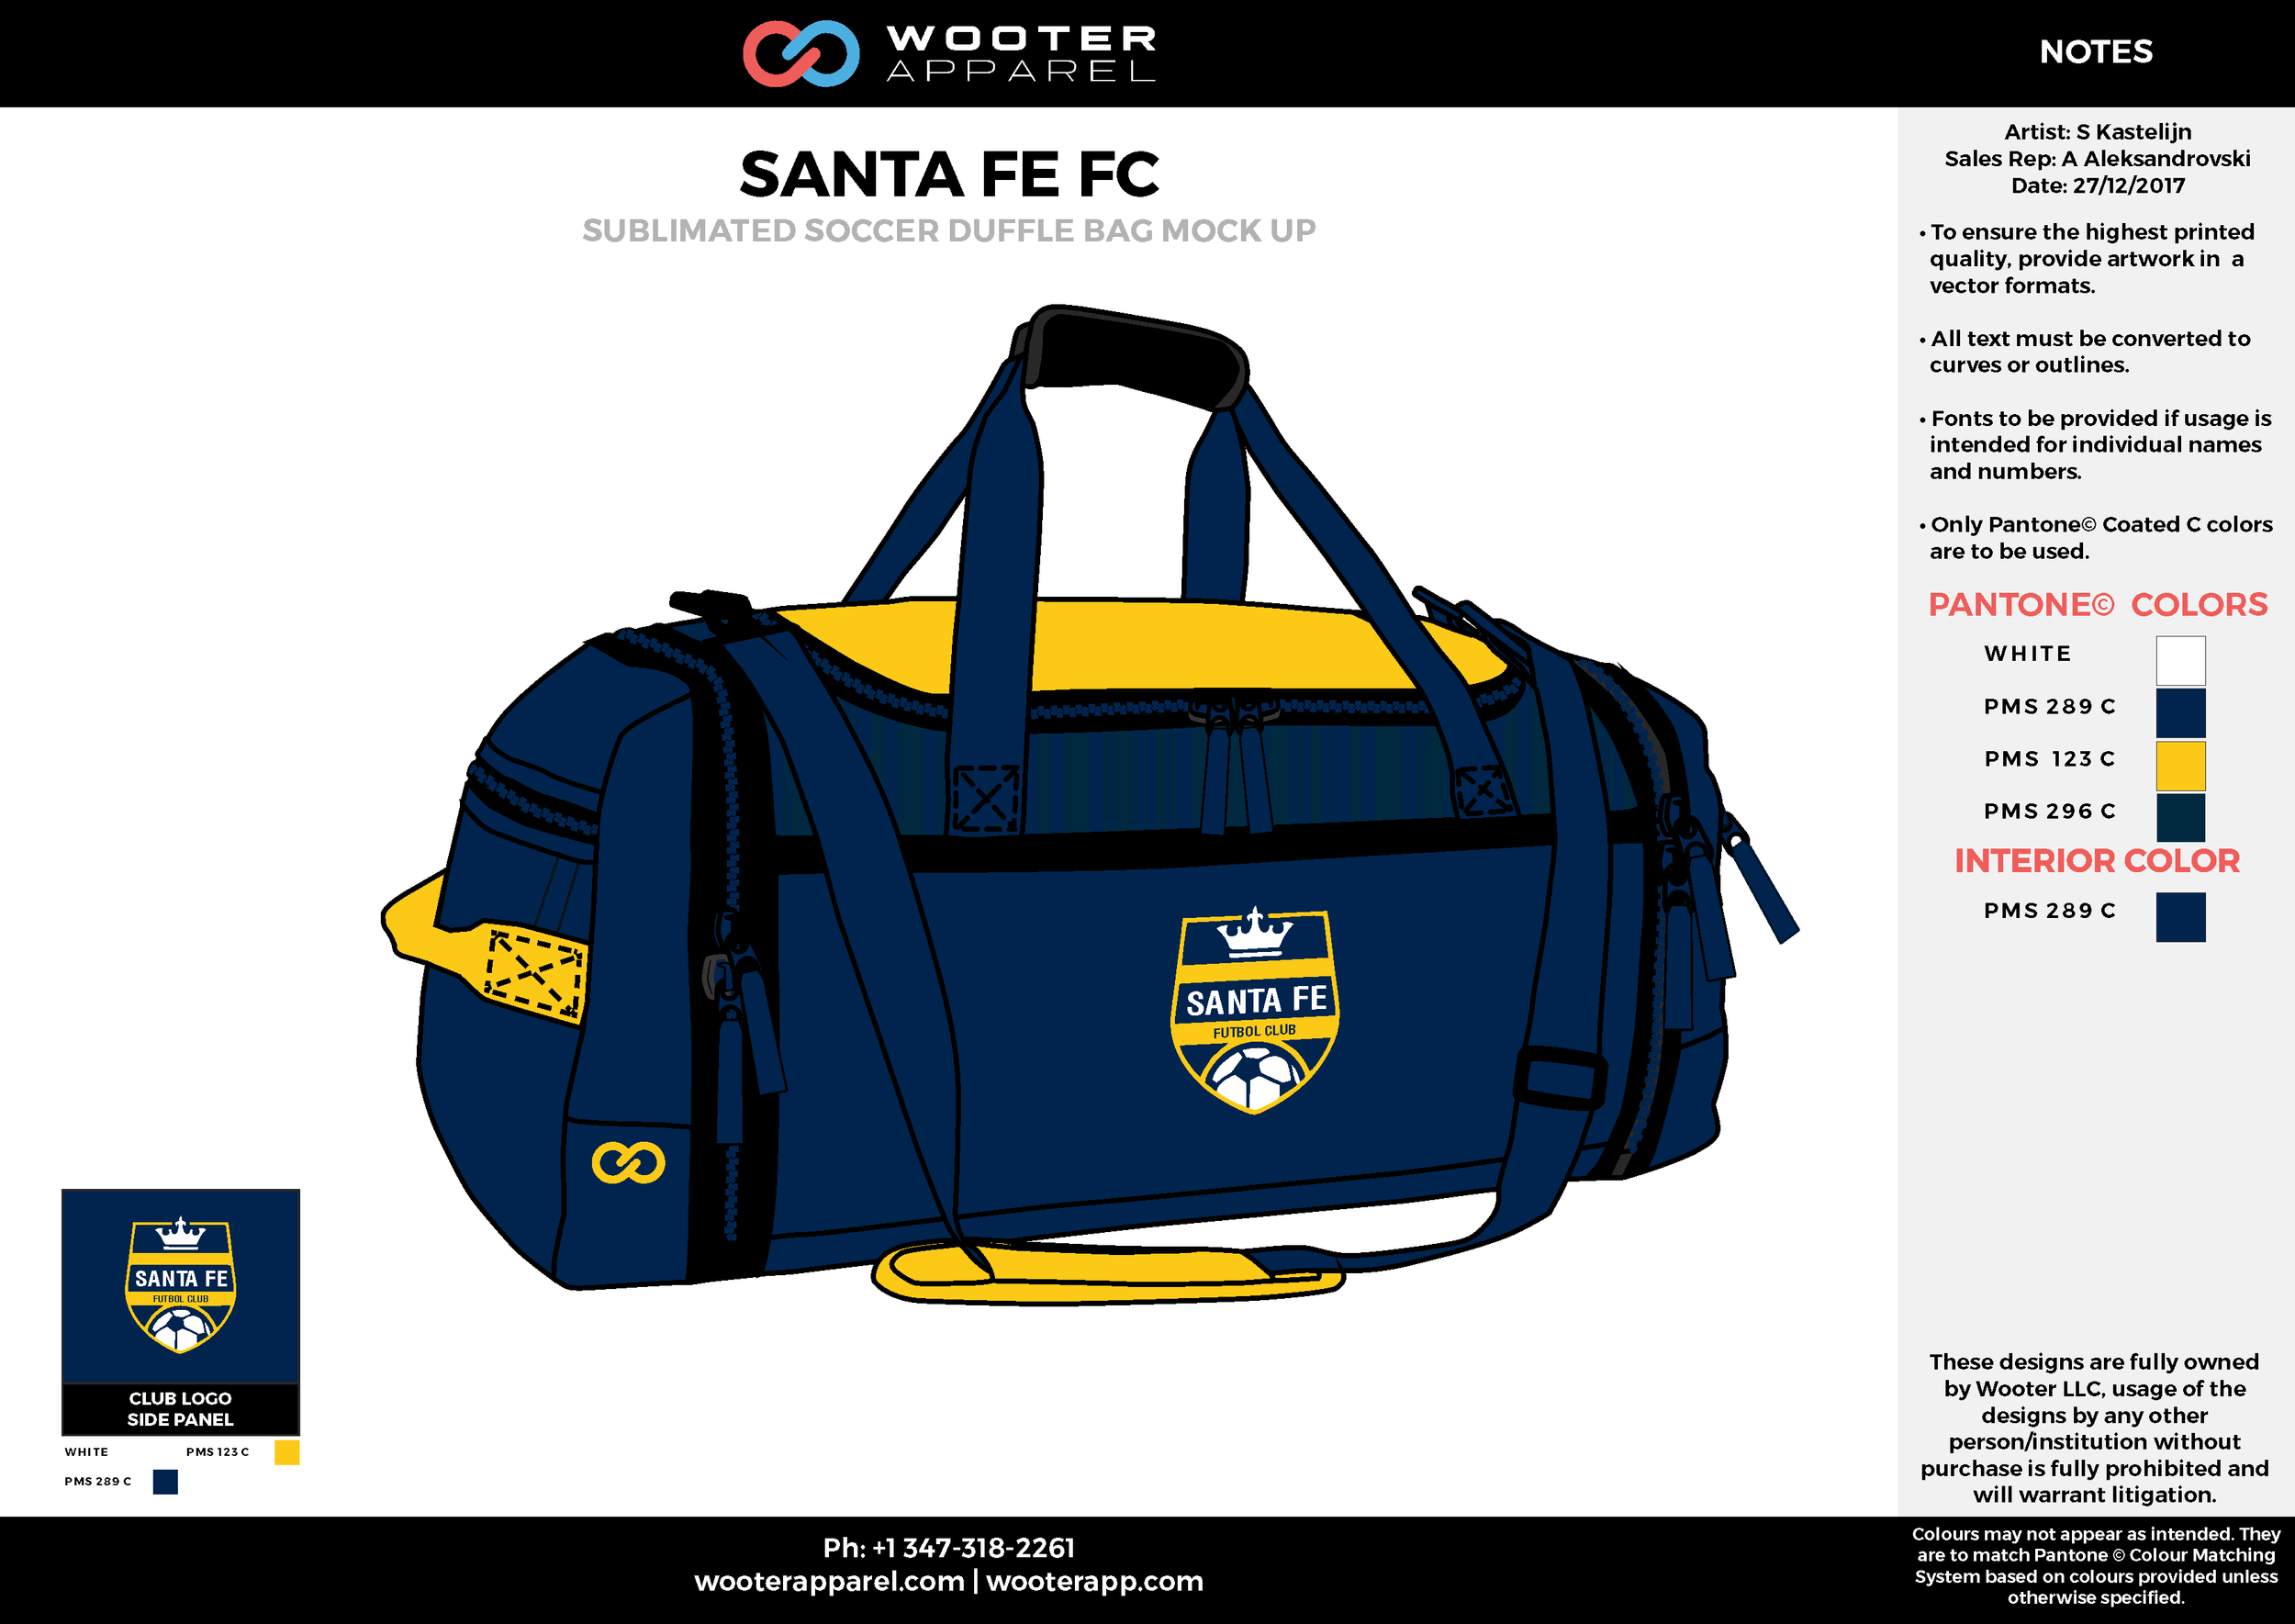 SANTA FE FC Blue Yellow Black and White Baseball Duffel Bag